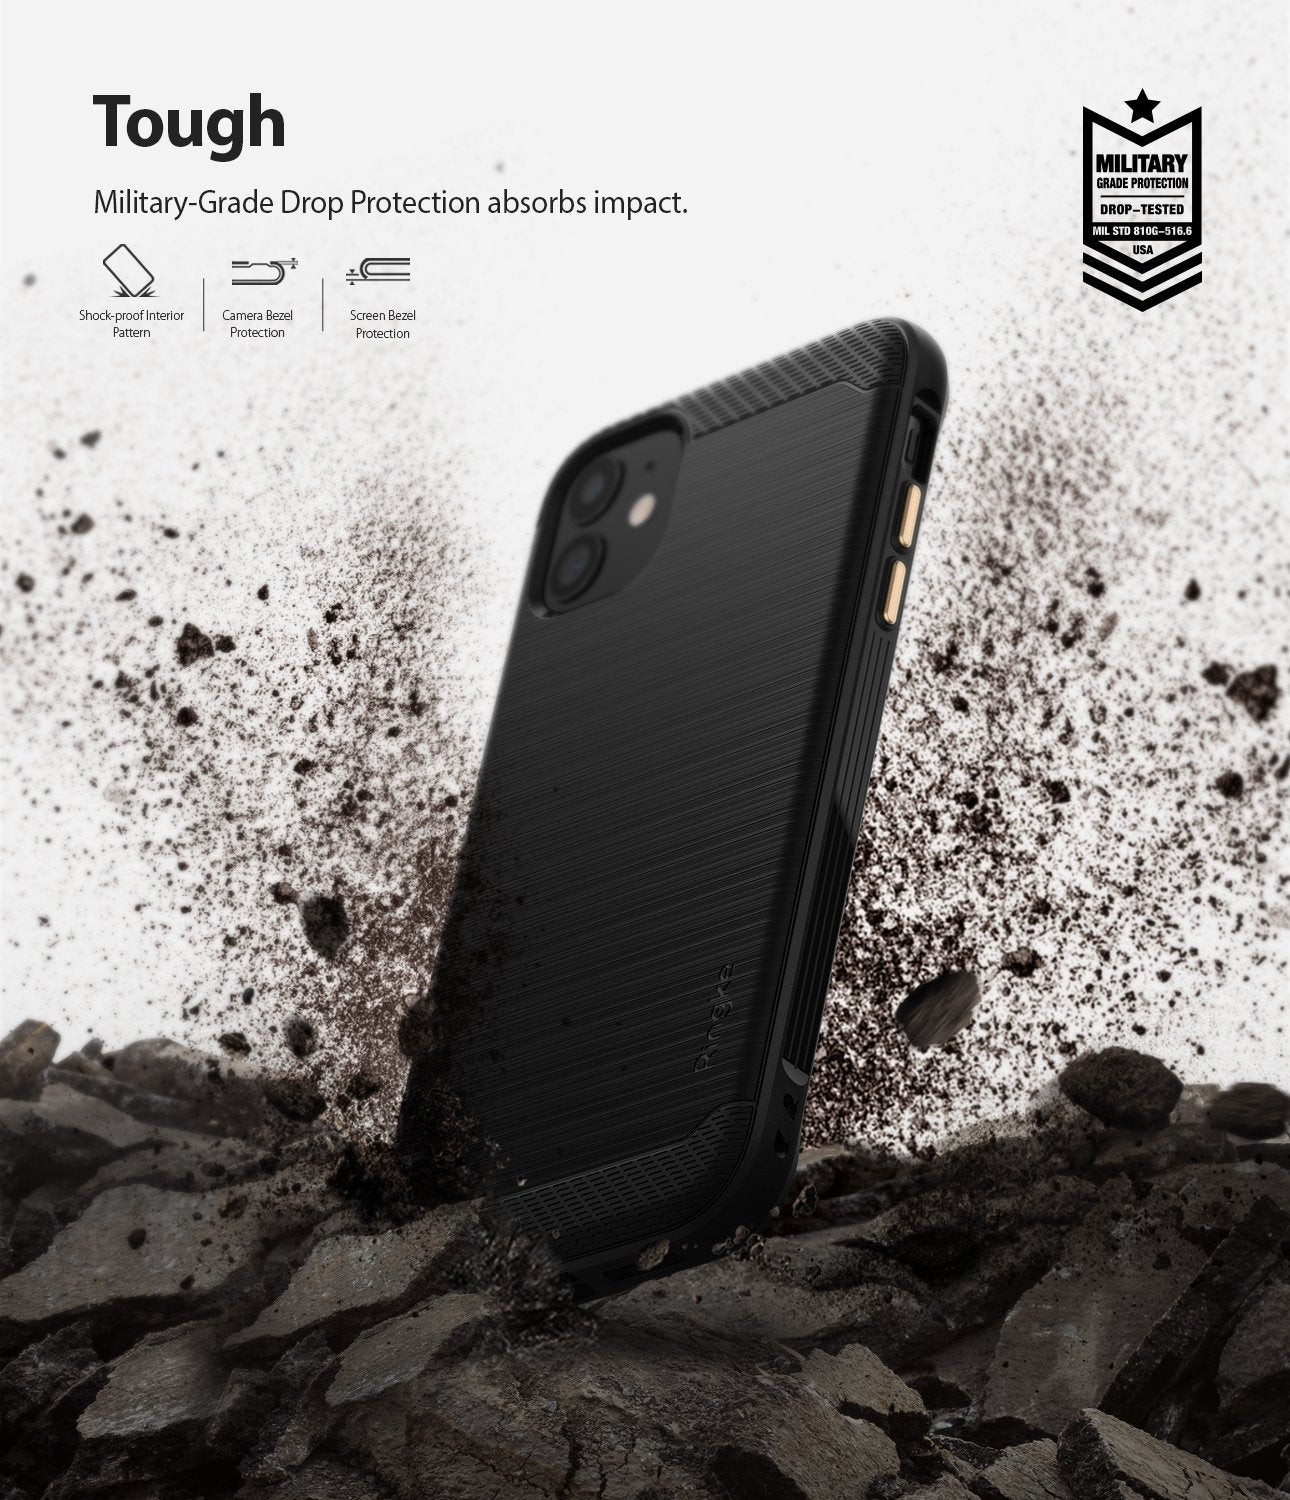 Ringke Onyx designed for iPhone 11 Black Tough Drop Protection